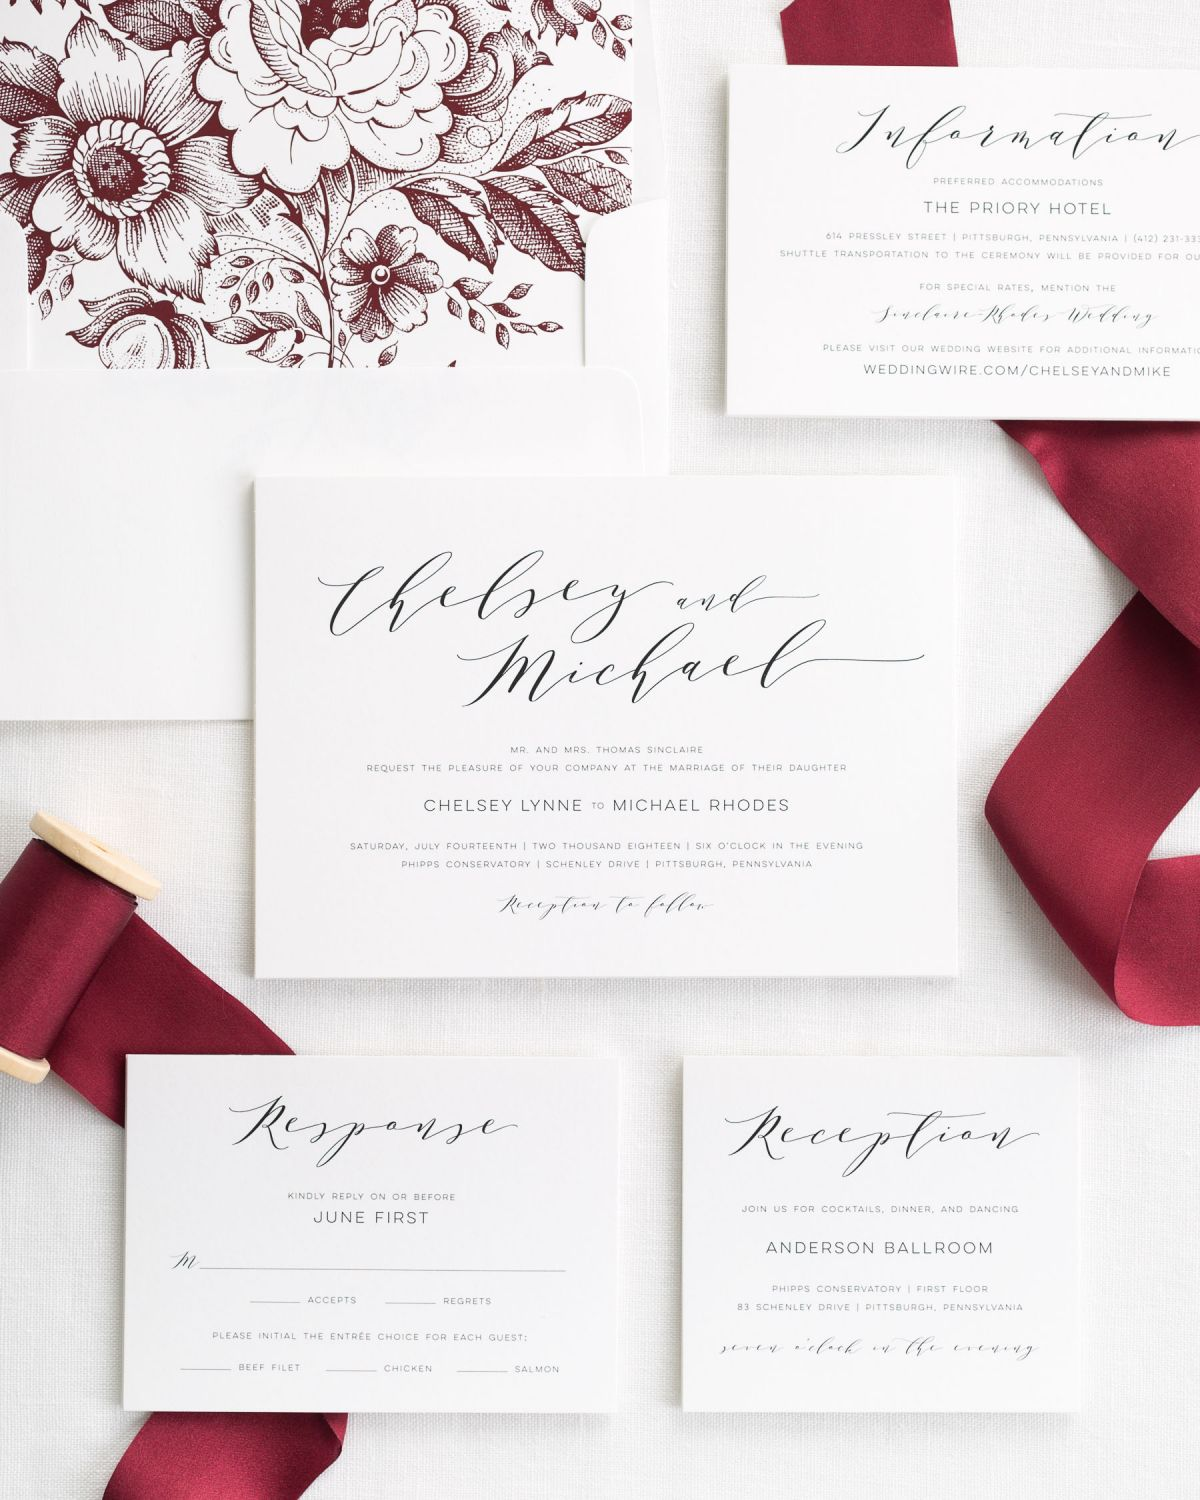 Wedding Invitations With Ribbons: Dramatic Romance Ribbon Wedding Invitations